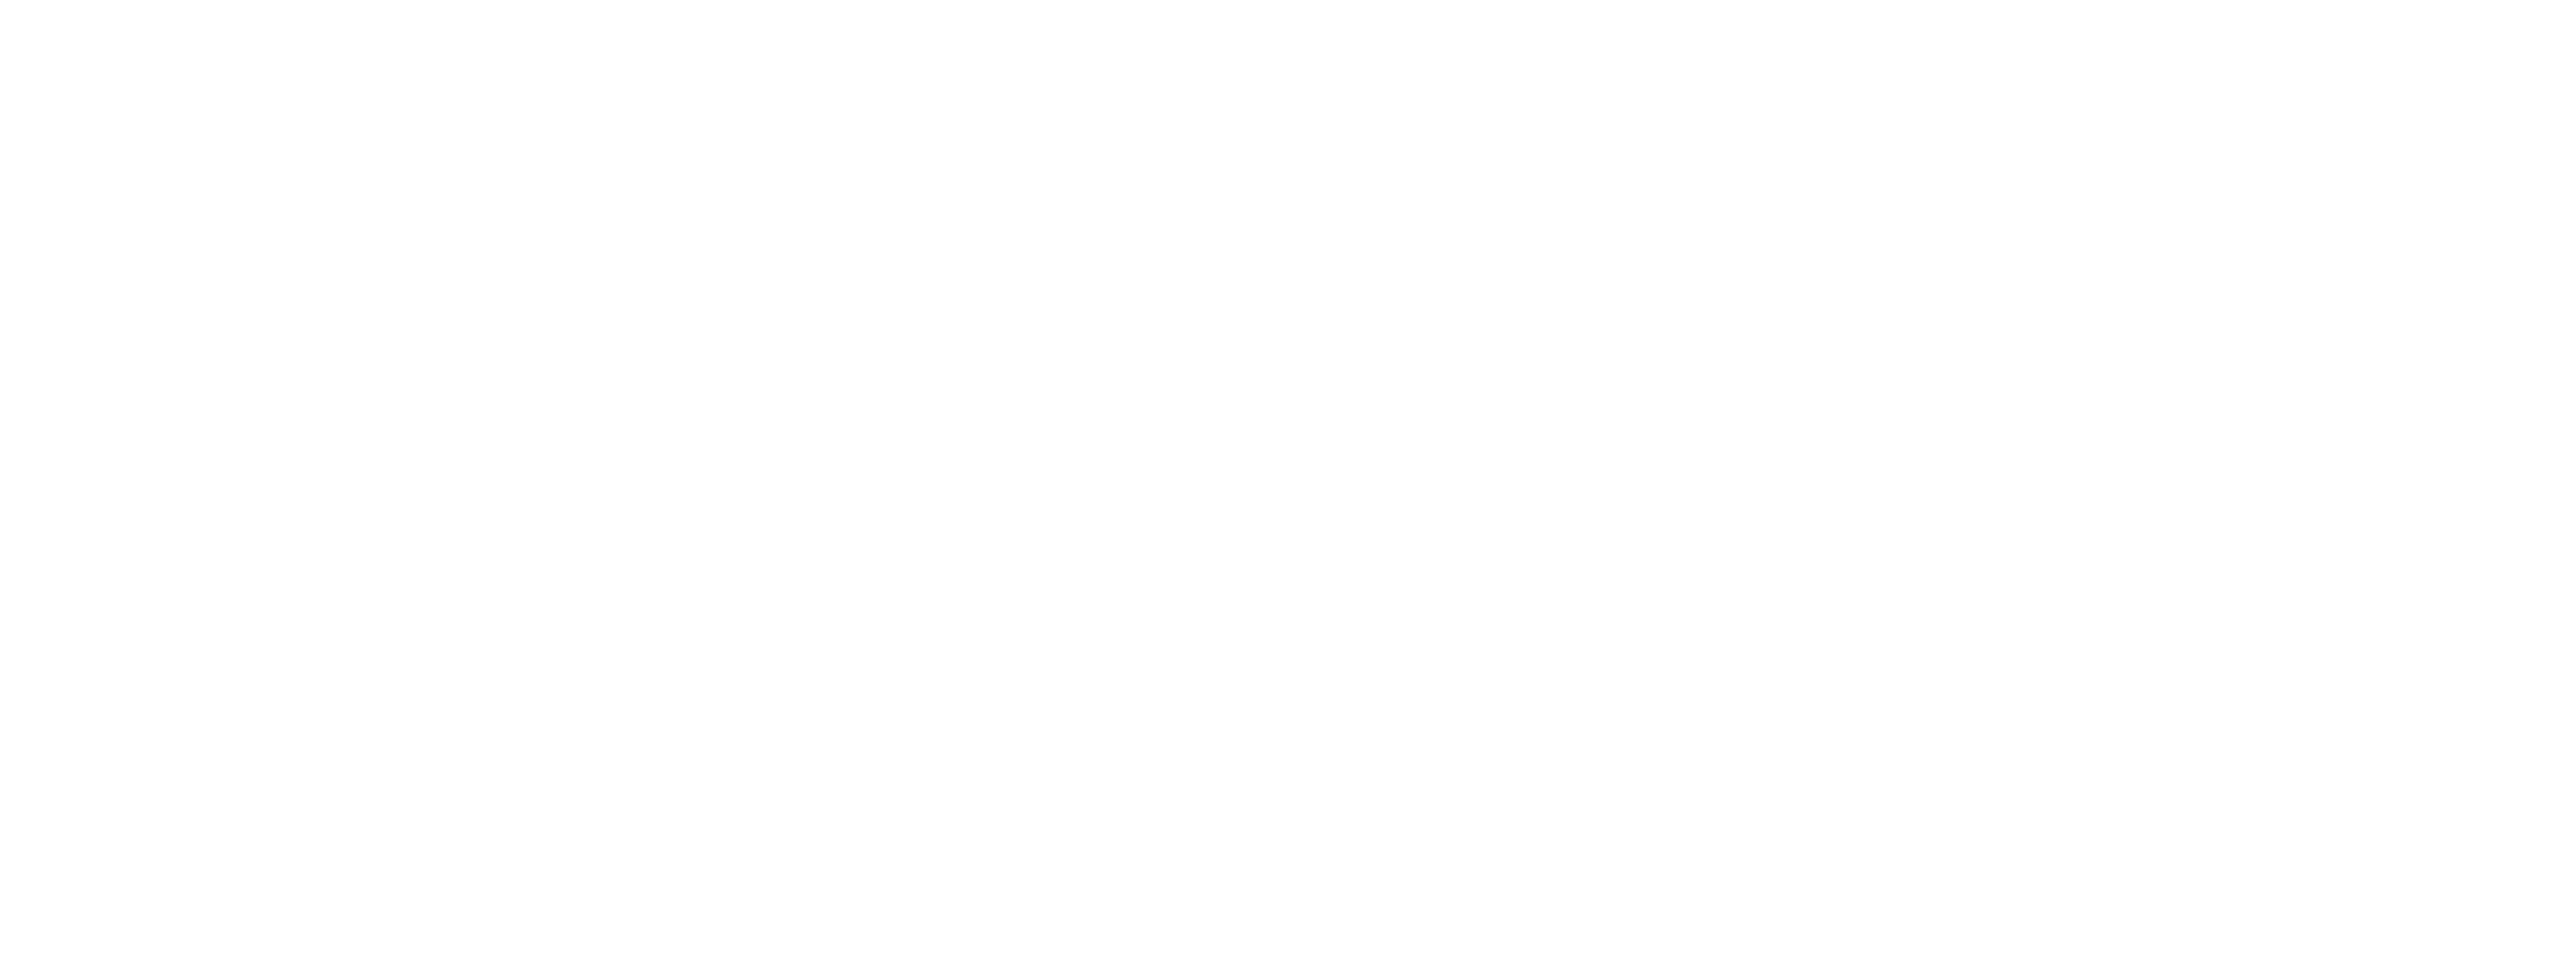 max music management and consulting logo